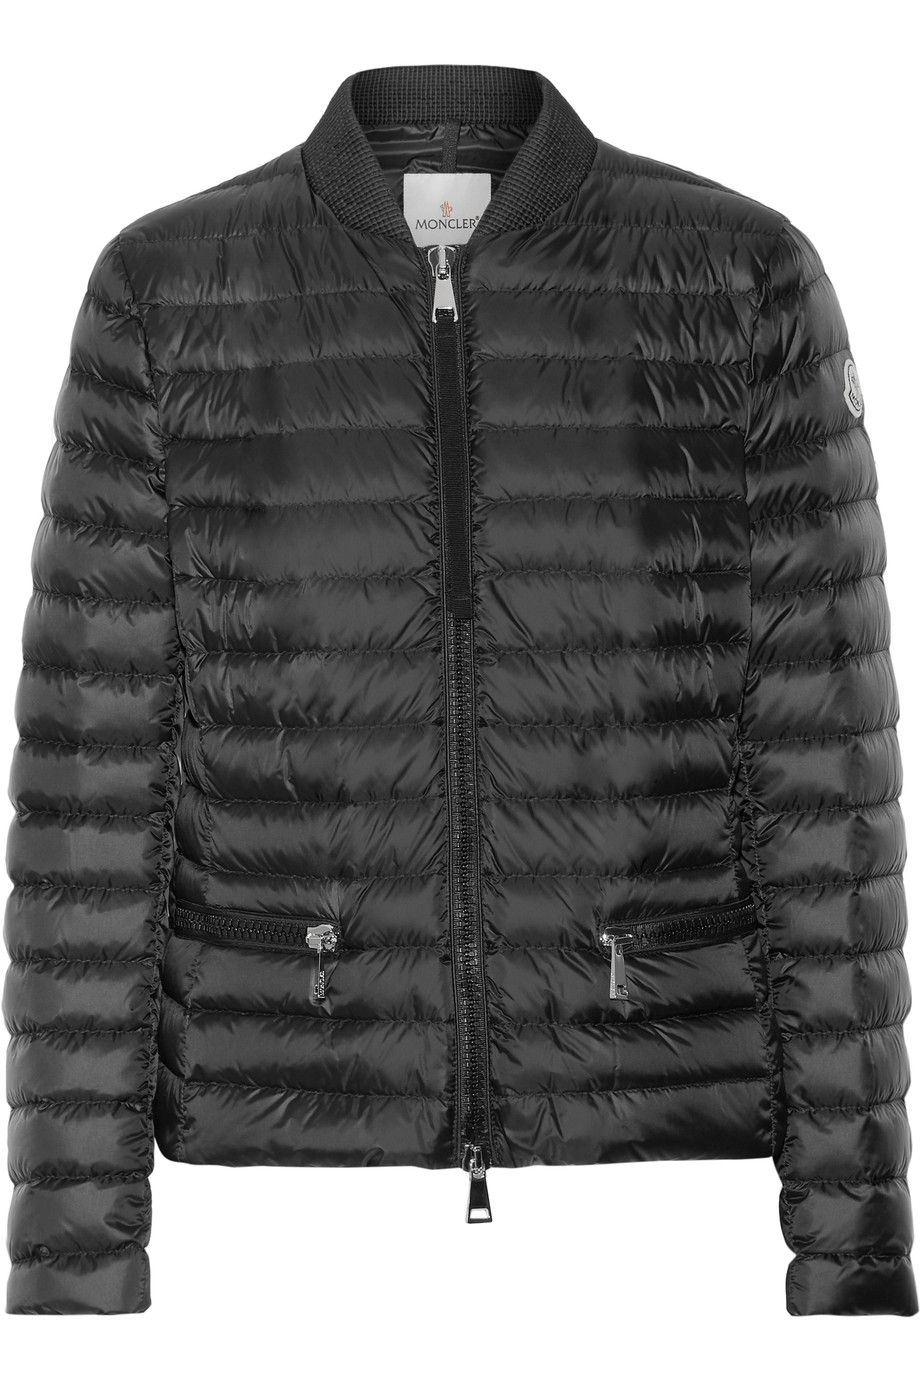 moncler99 on Jackets, Fashion, Quilted jacket